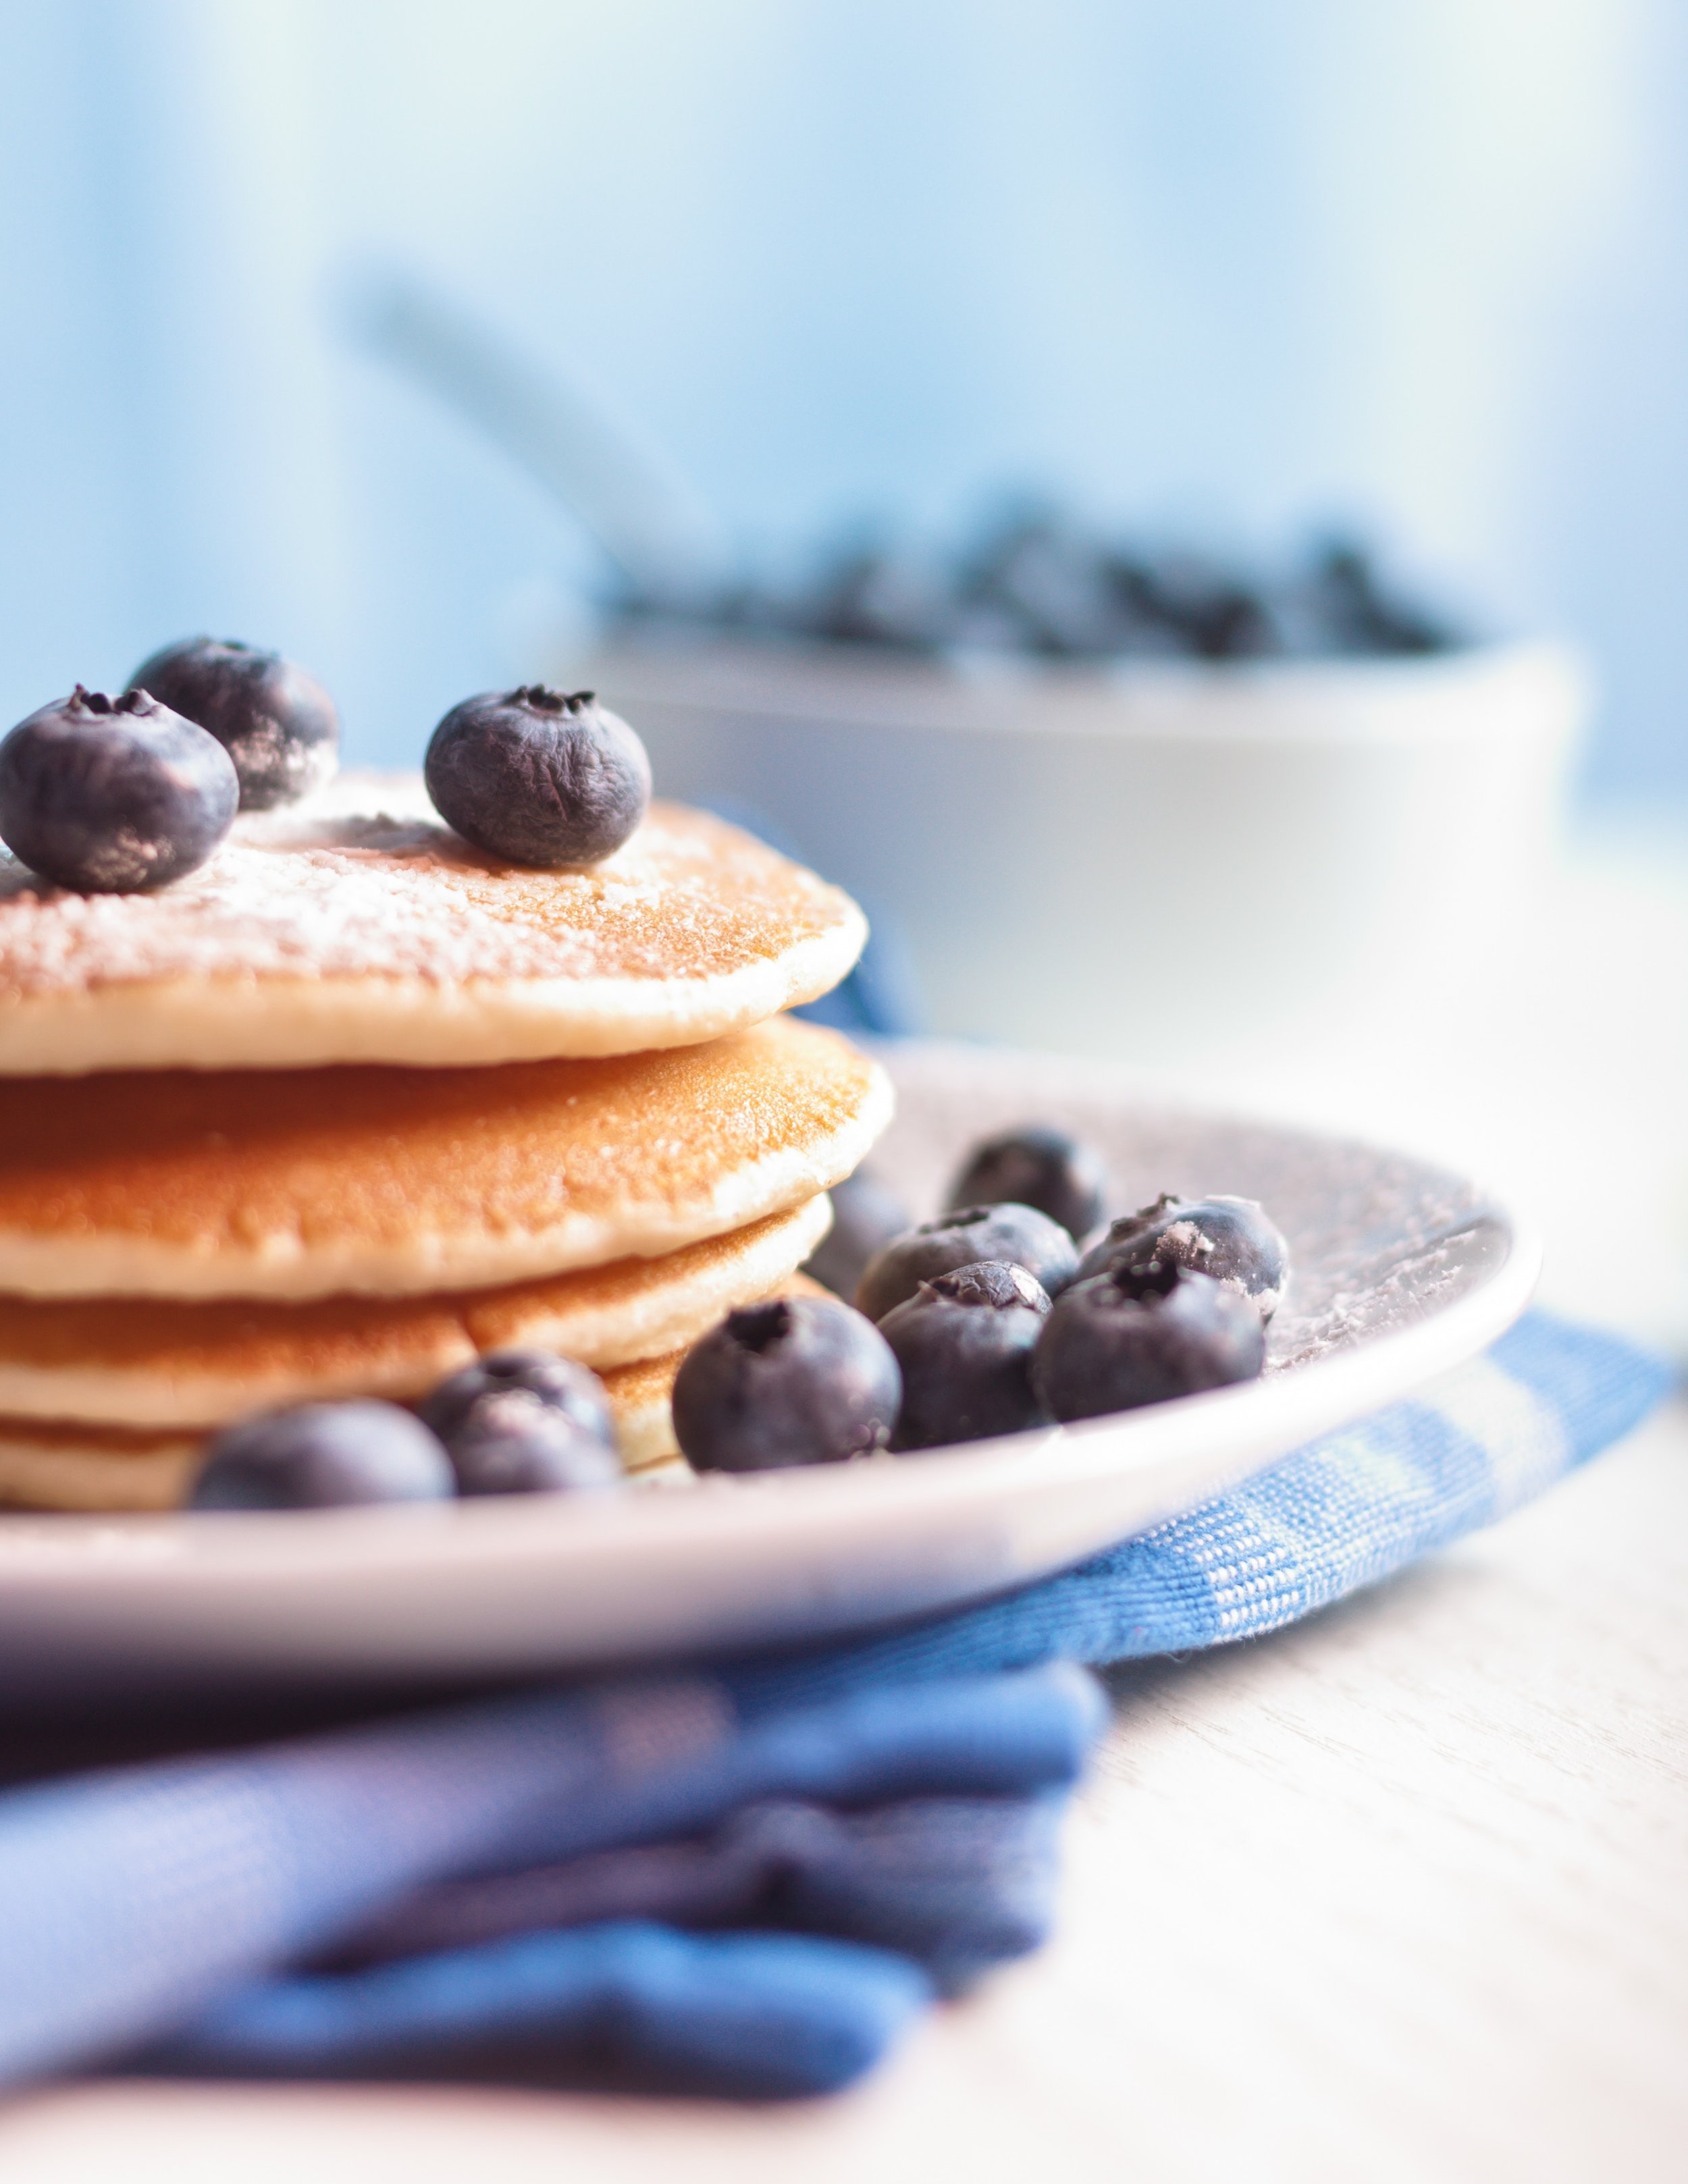 Lemon Blueberry Pancakes - This pancake recipe is the go-to in our house. Homemade and delicious. I've even made the batter the night before and allowed to set in the refrigerator over night for an easy breakfast the next morning.